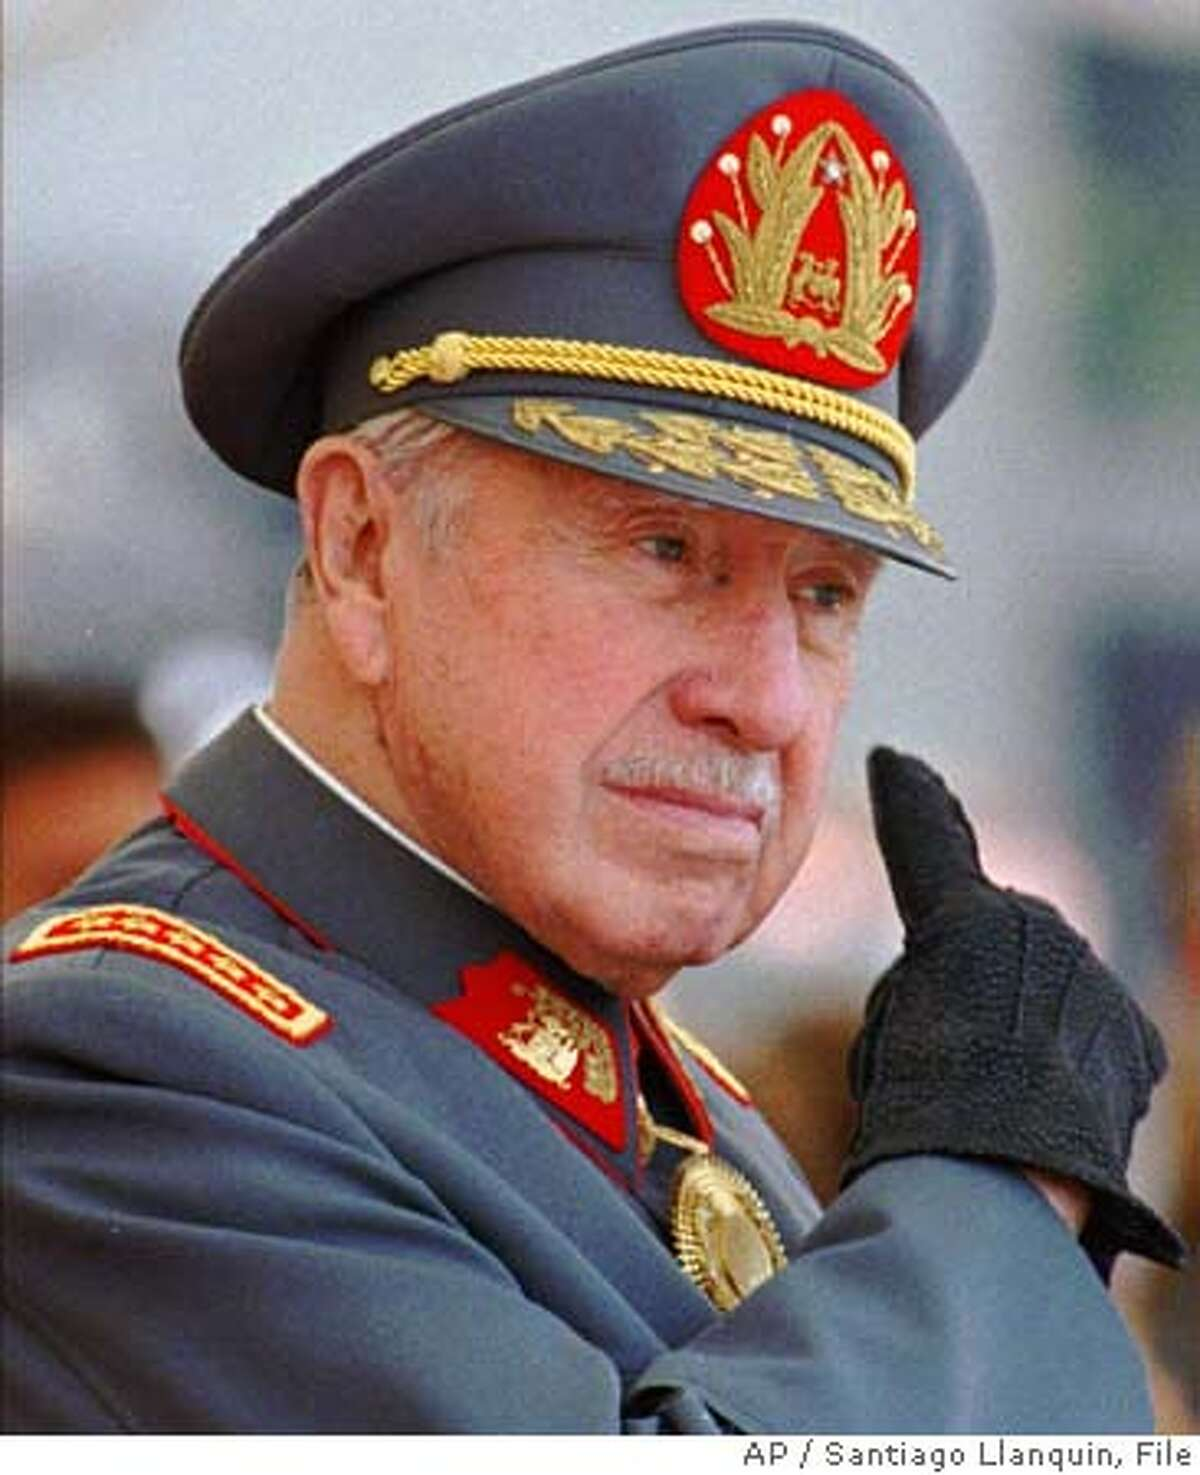 ** FILE ** Former dictator Gen. Augusto Pinochet is seen in Santiago, Chile in this this Sept. 11, 1997 file photo. In this Sept. 11, 1997 file photo. Gen. Augusto Pinochet suffered a stroke, but is in stable condition at Santiago's Army Hospital Saturday, Dec. 18, 2004 hospital officials said. (AP Photo/Santiago Llanquin, FILE)